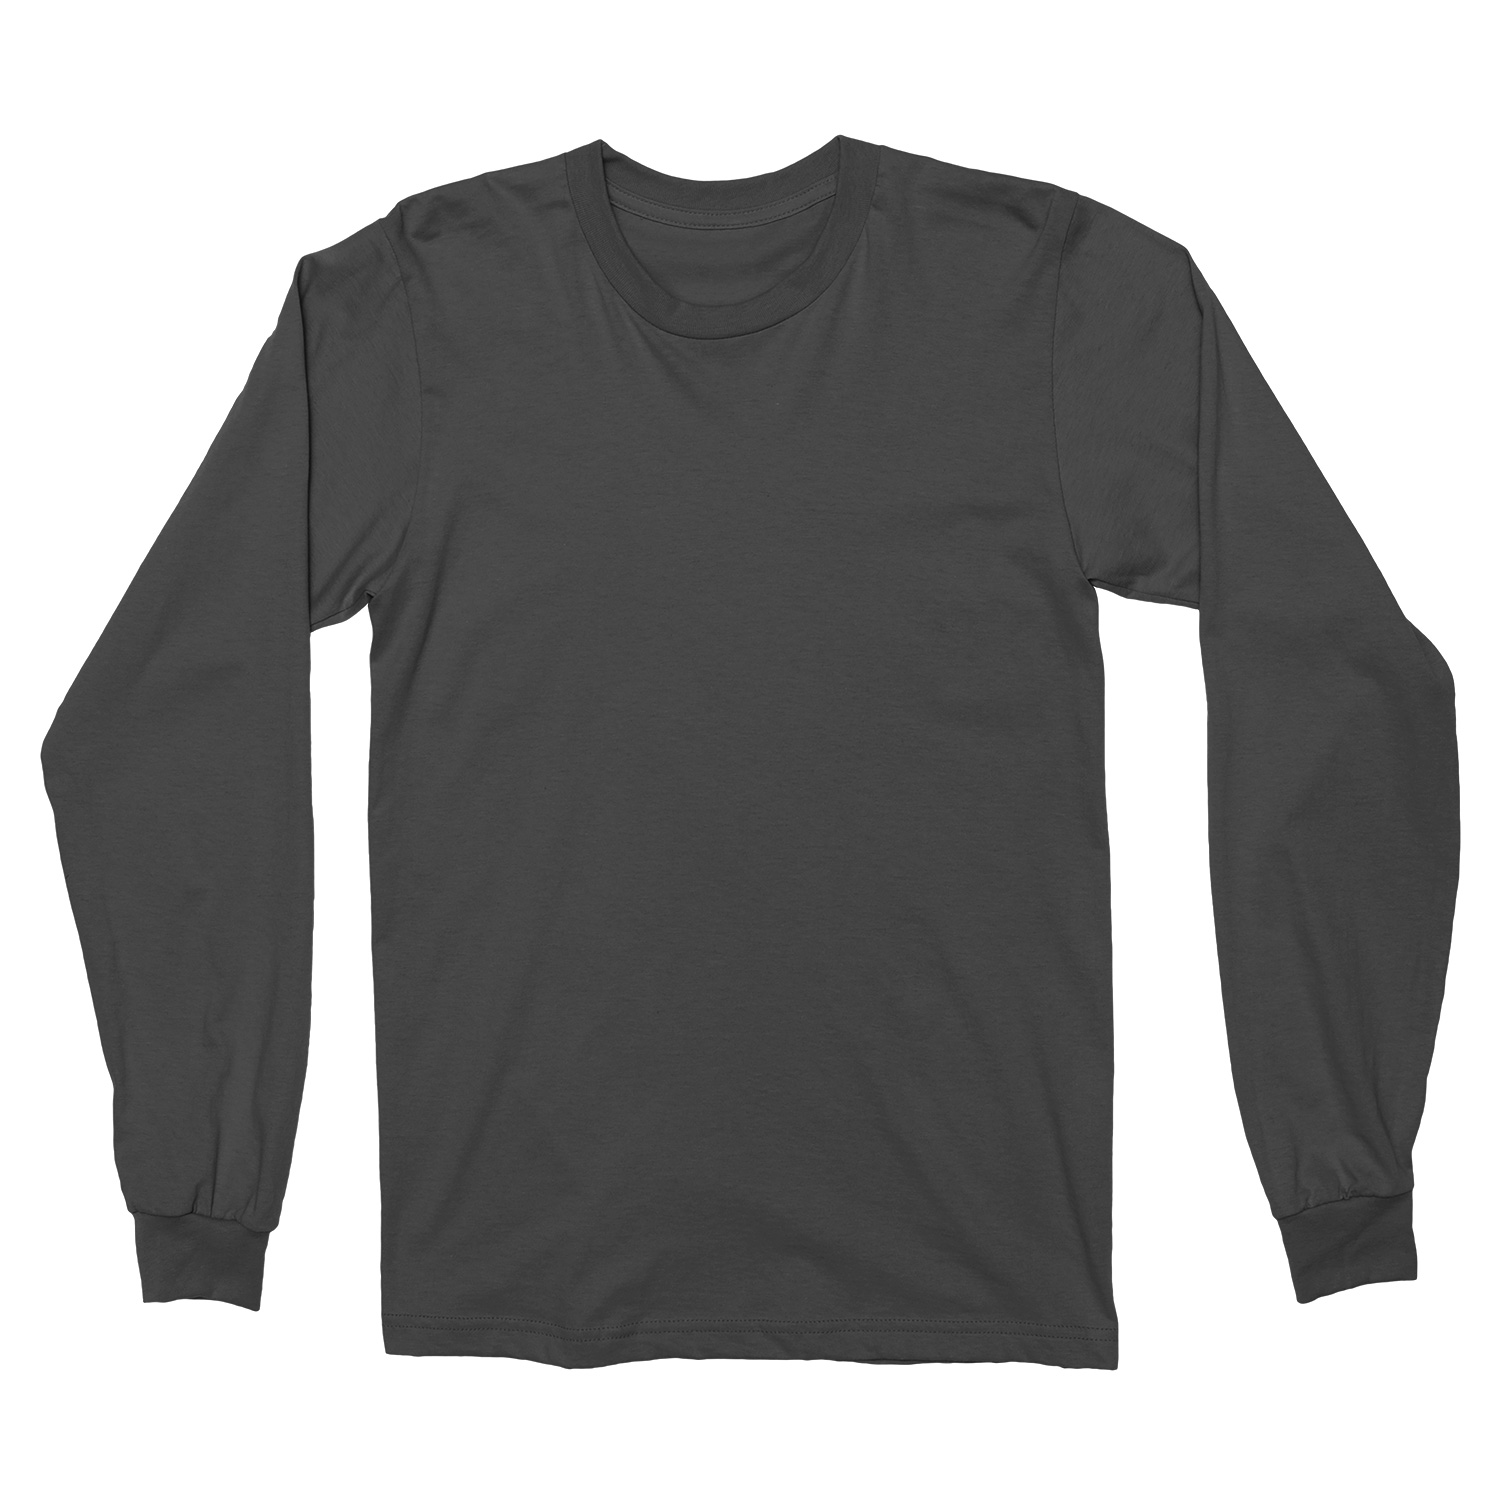 long-sleeve-t-shirt-thumb.jpg